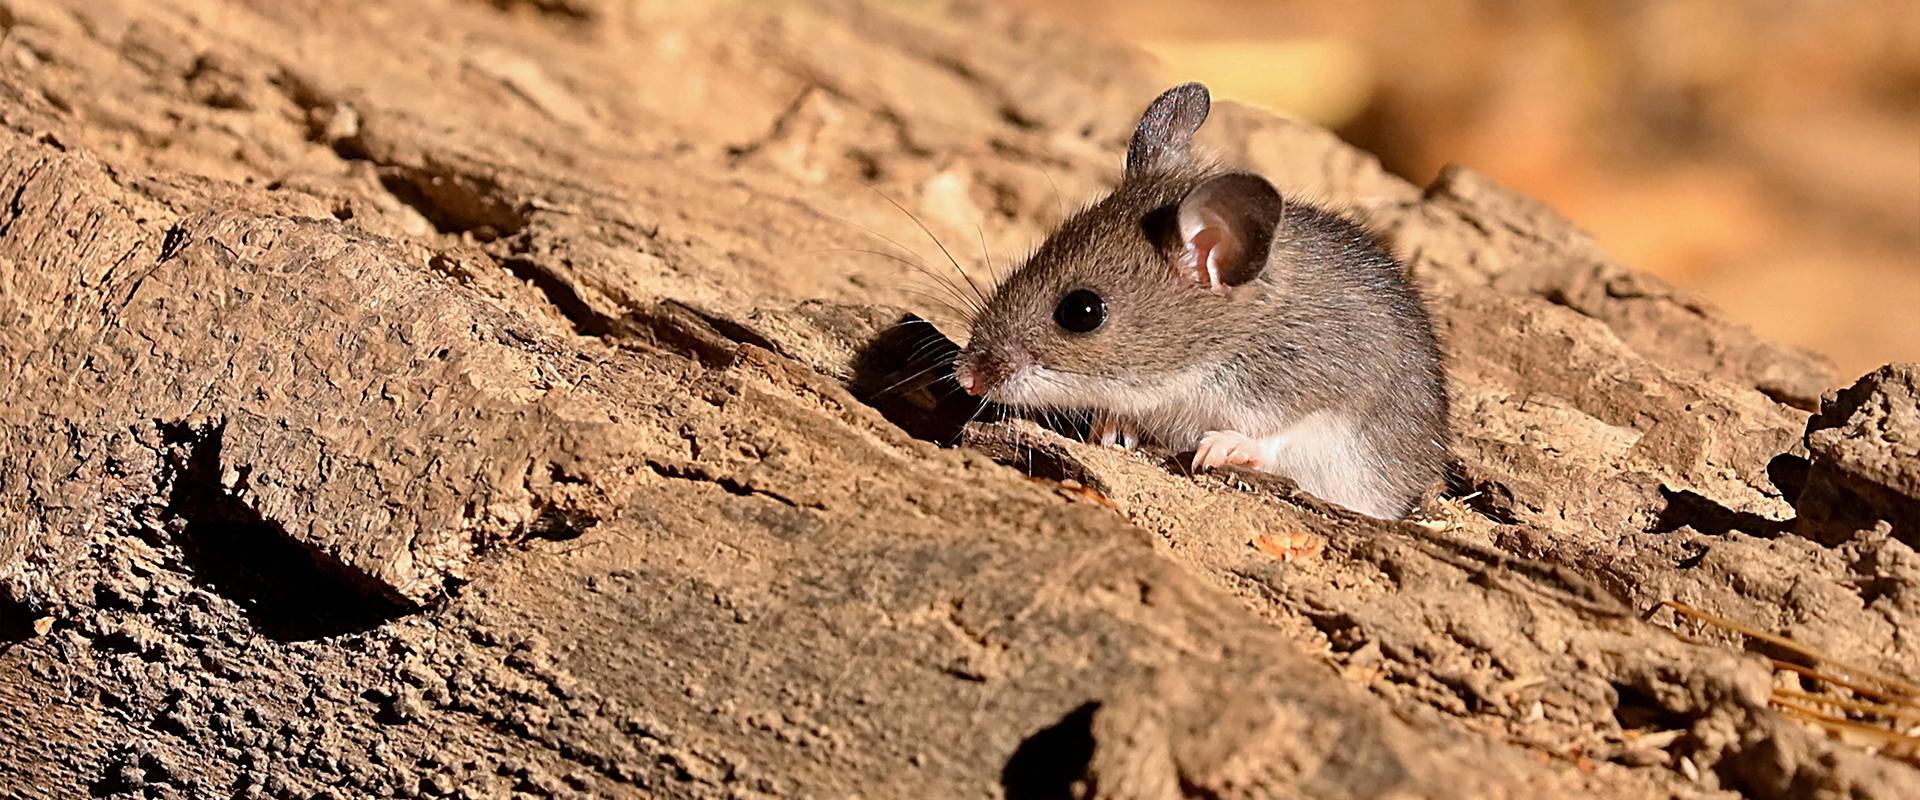 a mouse outside in meridian idaho